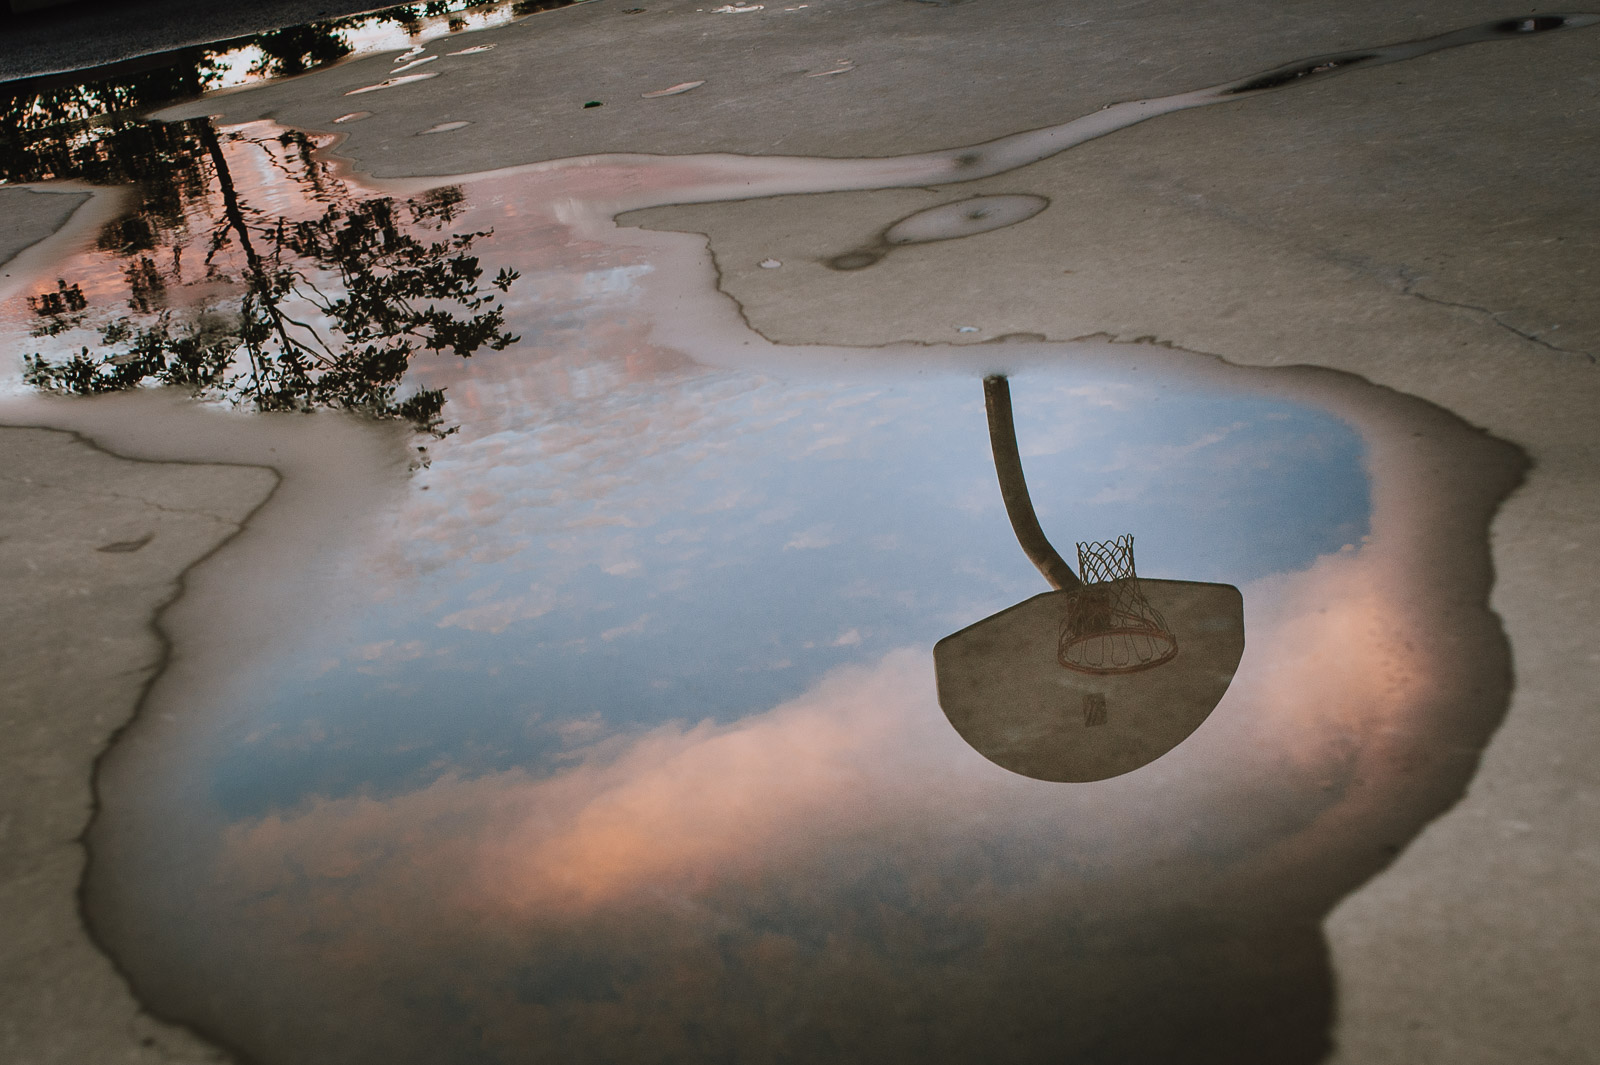 a basketball hoop reflecting in a water puddle by Ebony Logins